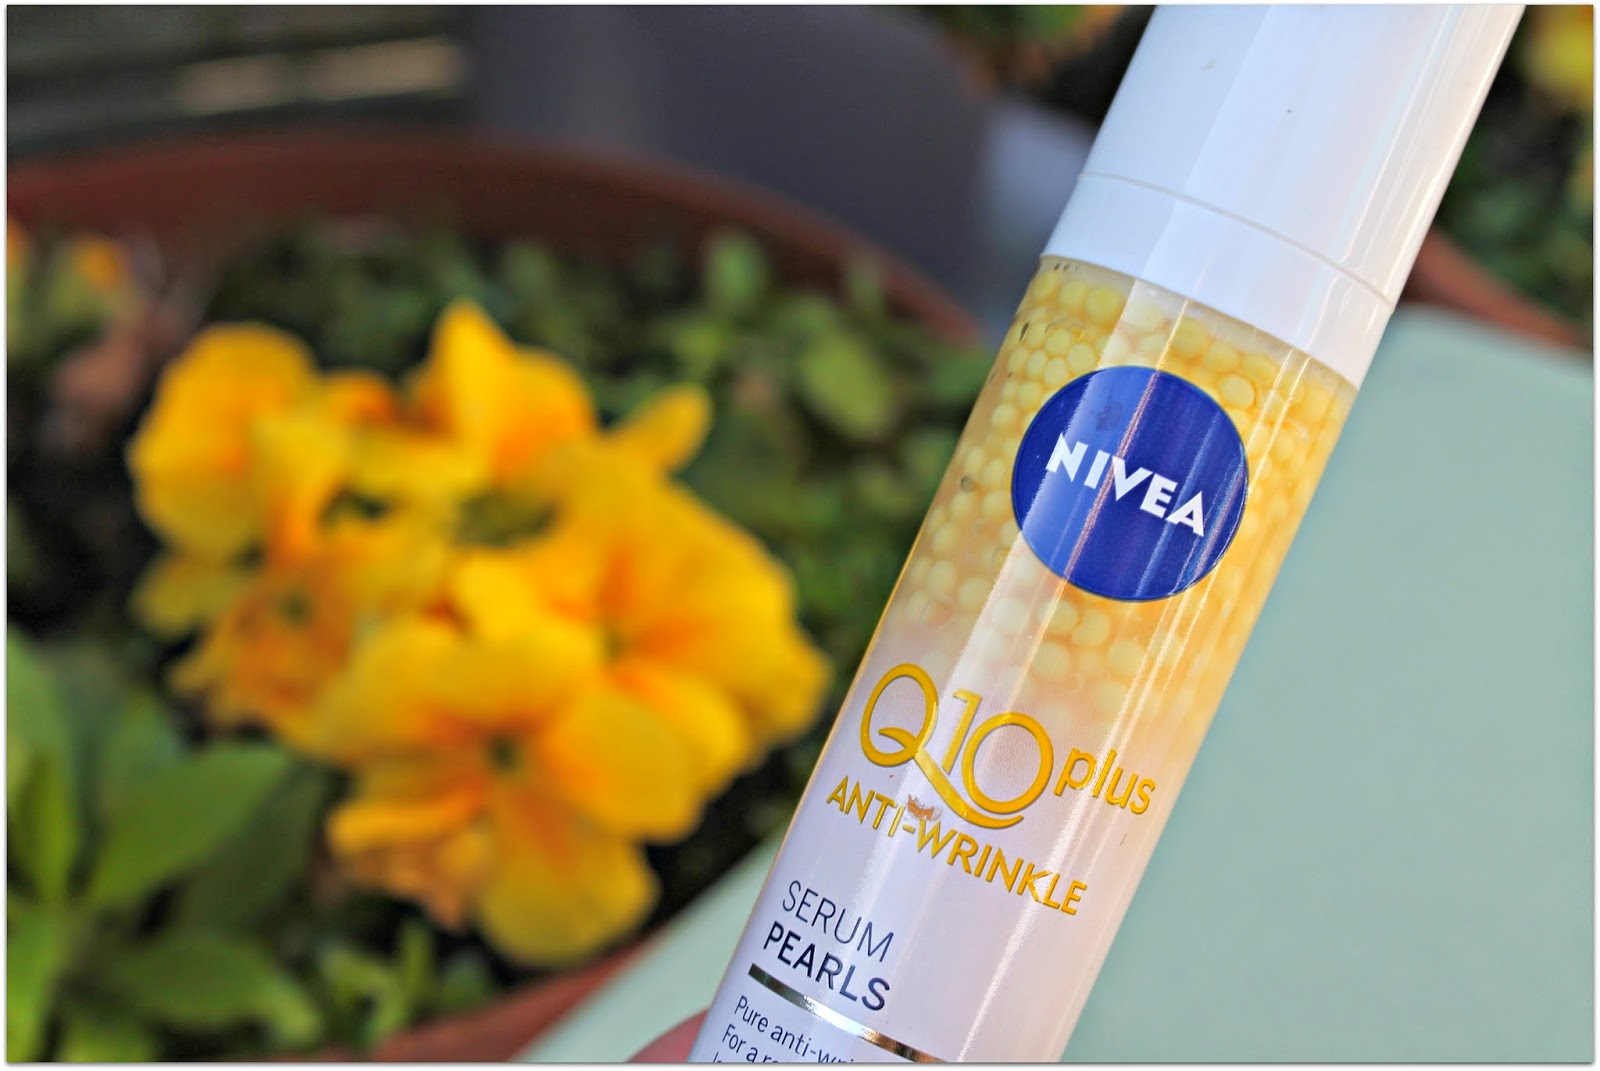 Nivea Q10 plus anti wrinkle serum pearls